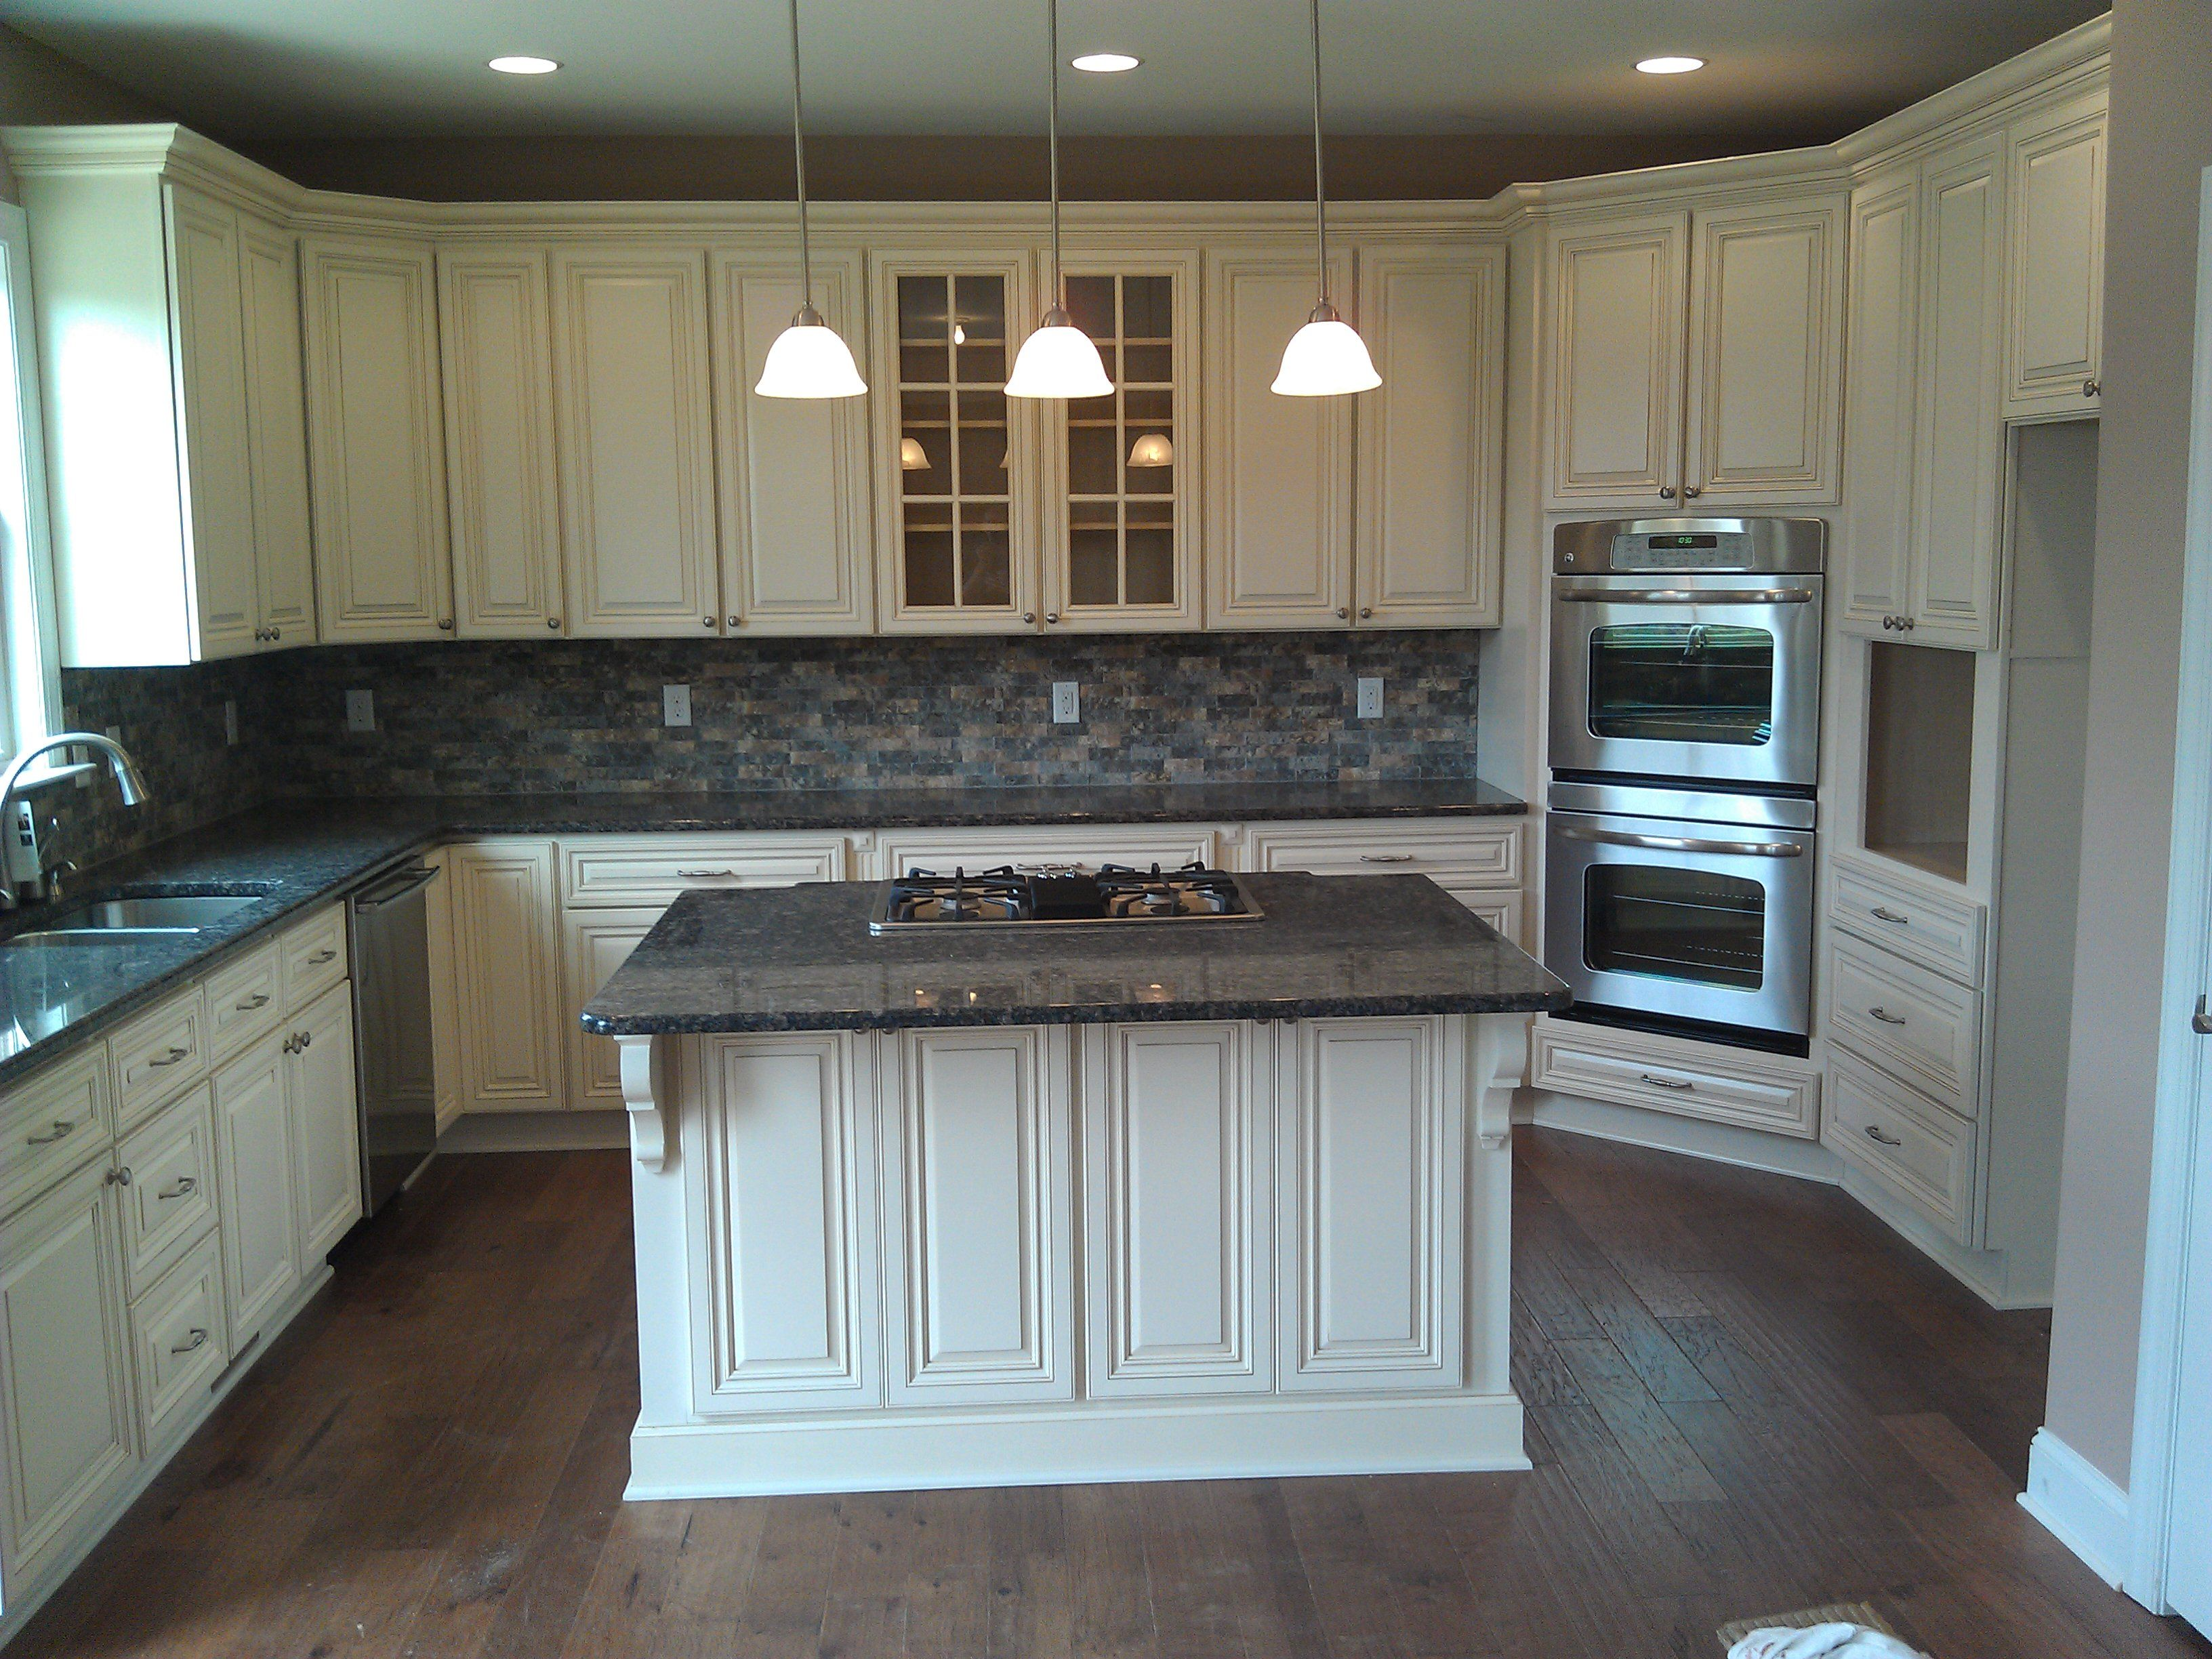 just in cabinets and interiors llc jsi cabinetry kitchen cabinets pinterest interiors. Black Bedroom Furniture Sets. Home Design Ideas